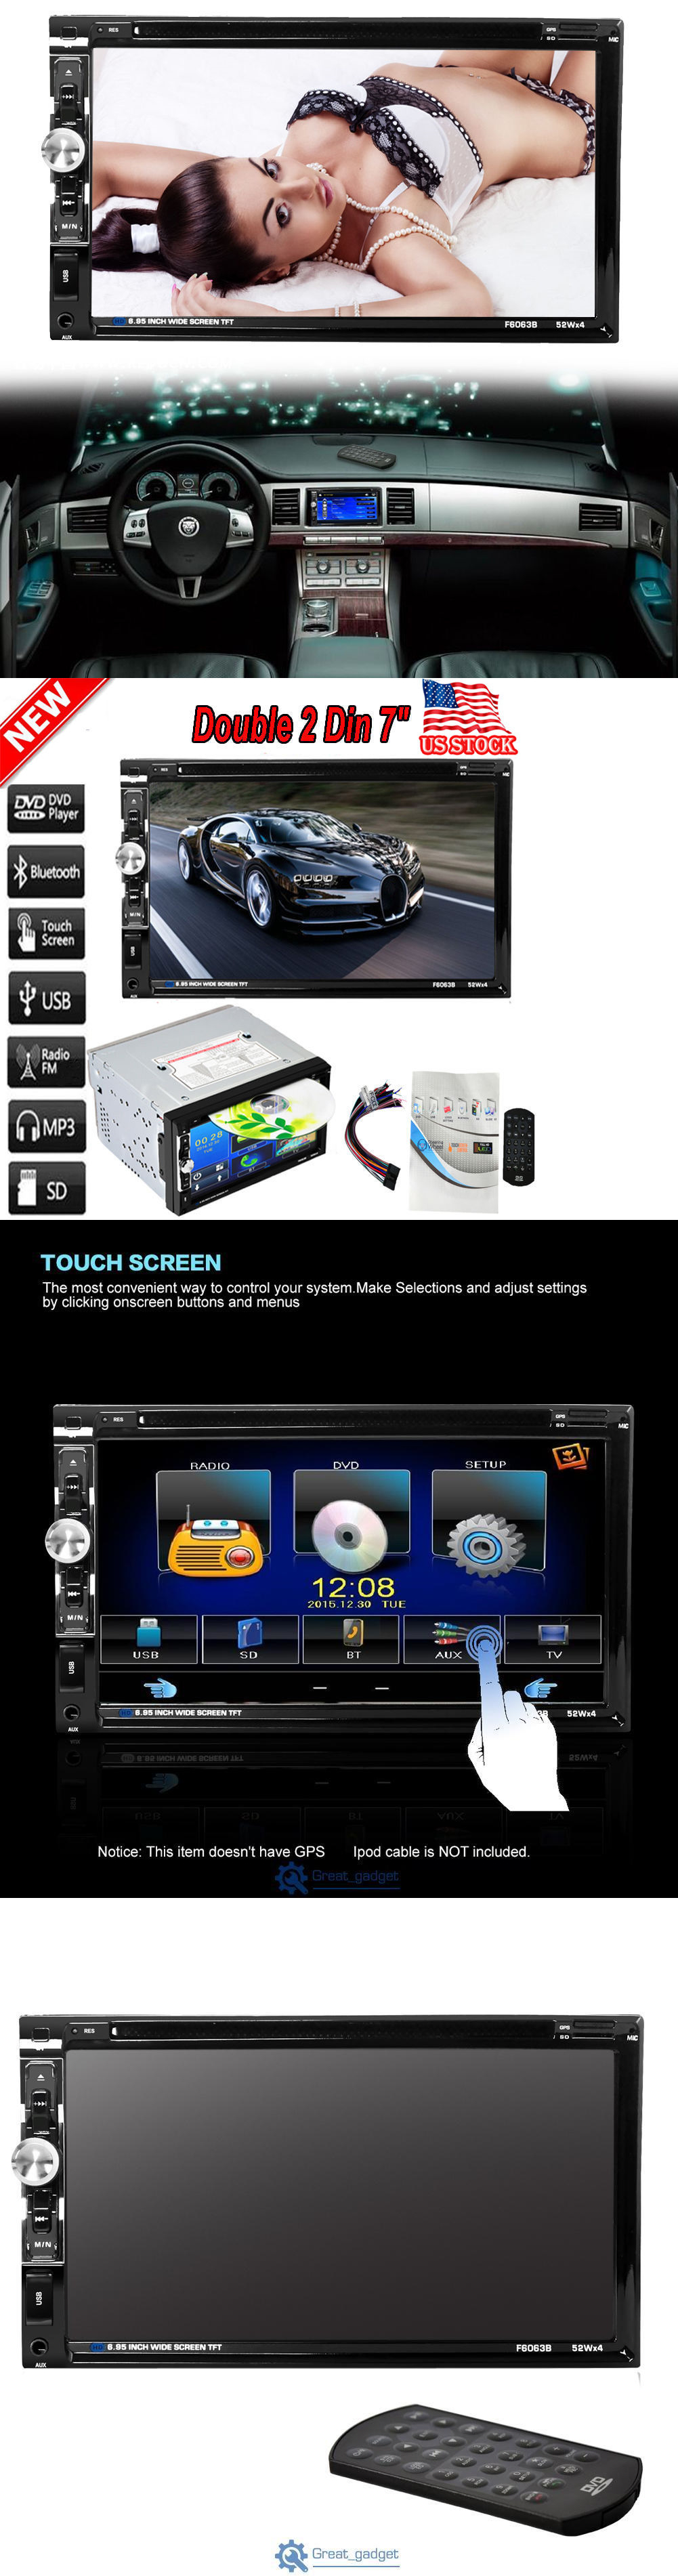 Other car audio double 2din 7 stereo car dvd player bluetooth radio sd usb gps